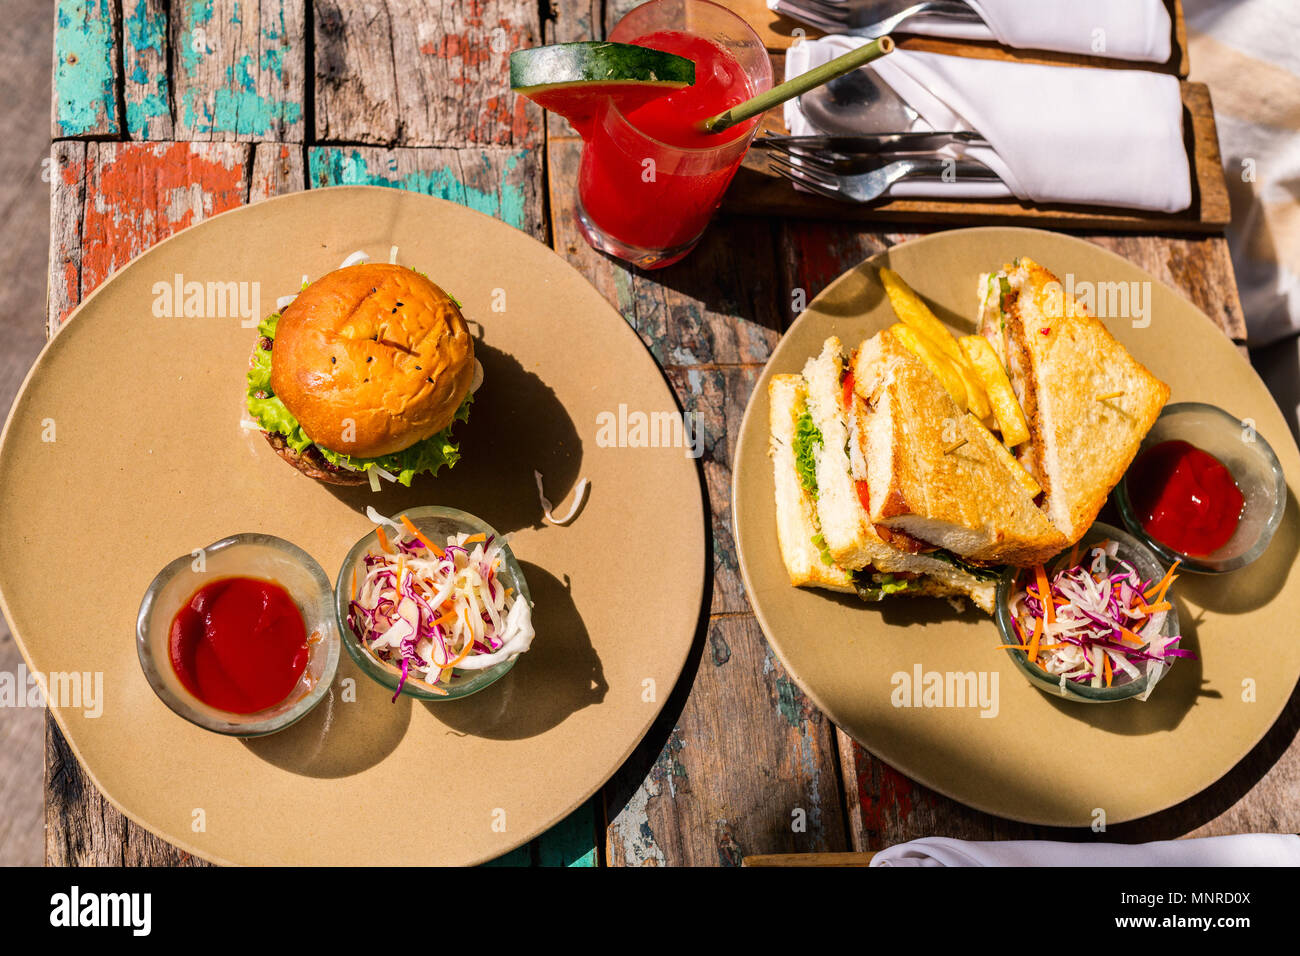 Delicious fresh fish sandwich,  burger and green salad served for lunch - Stock Image